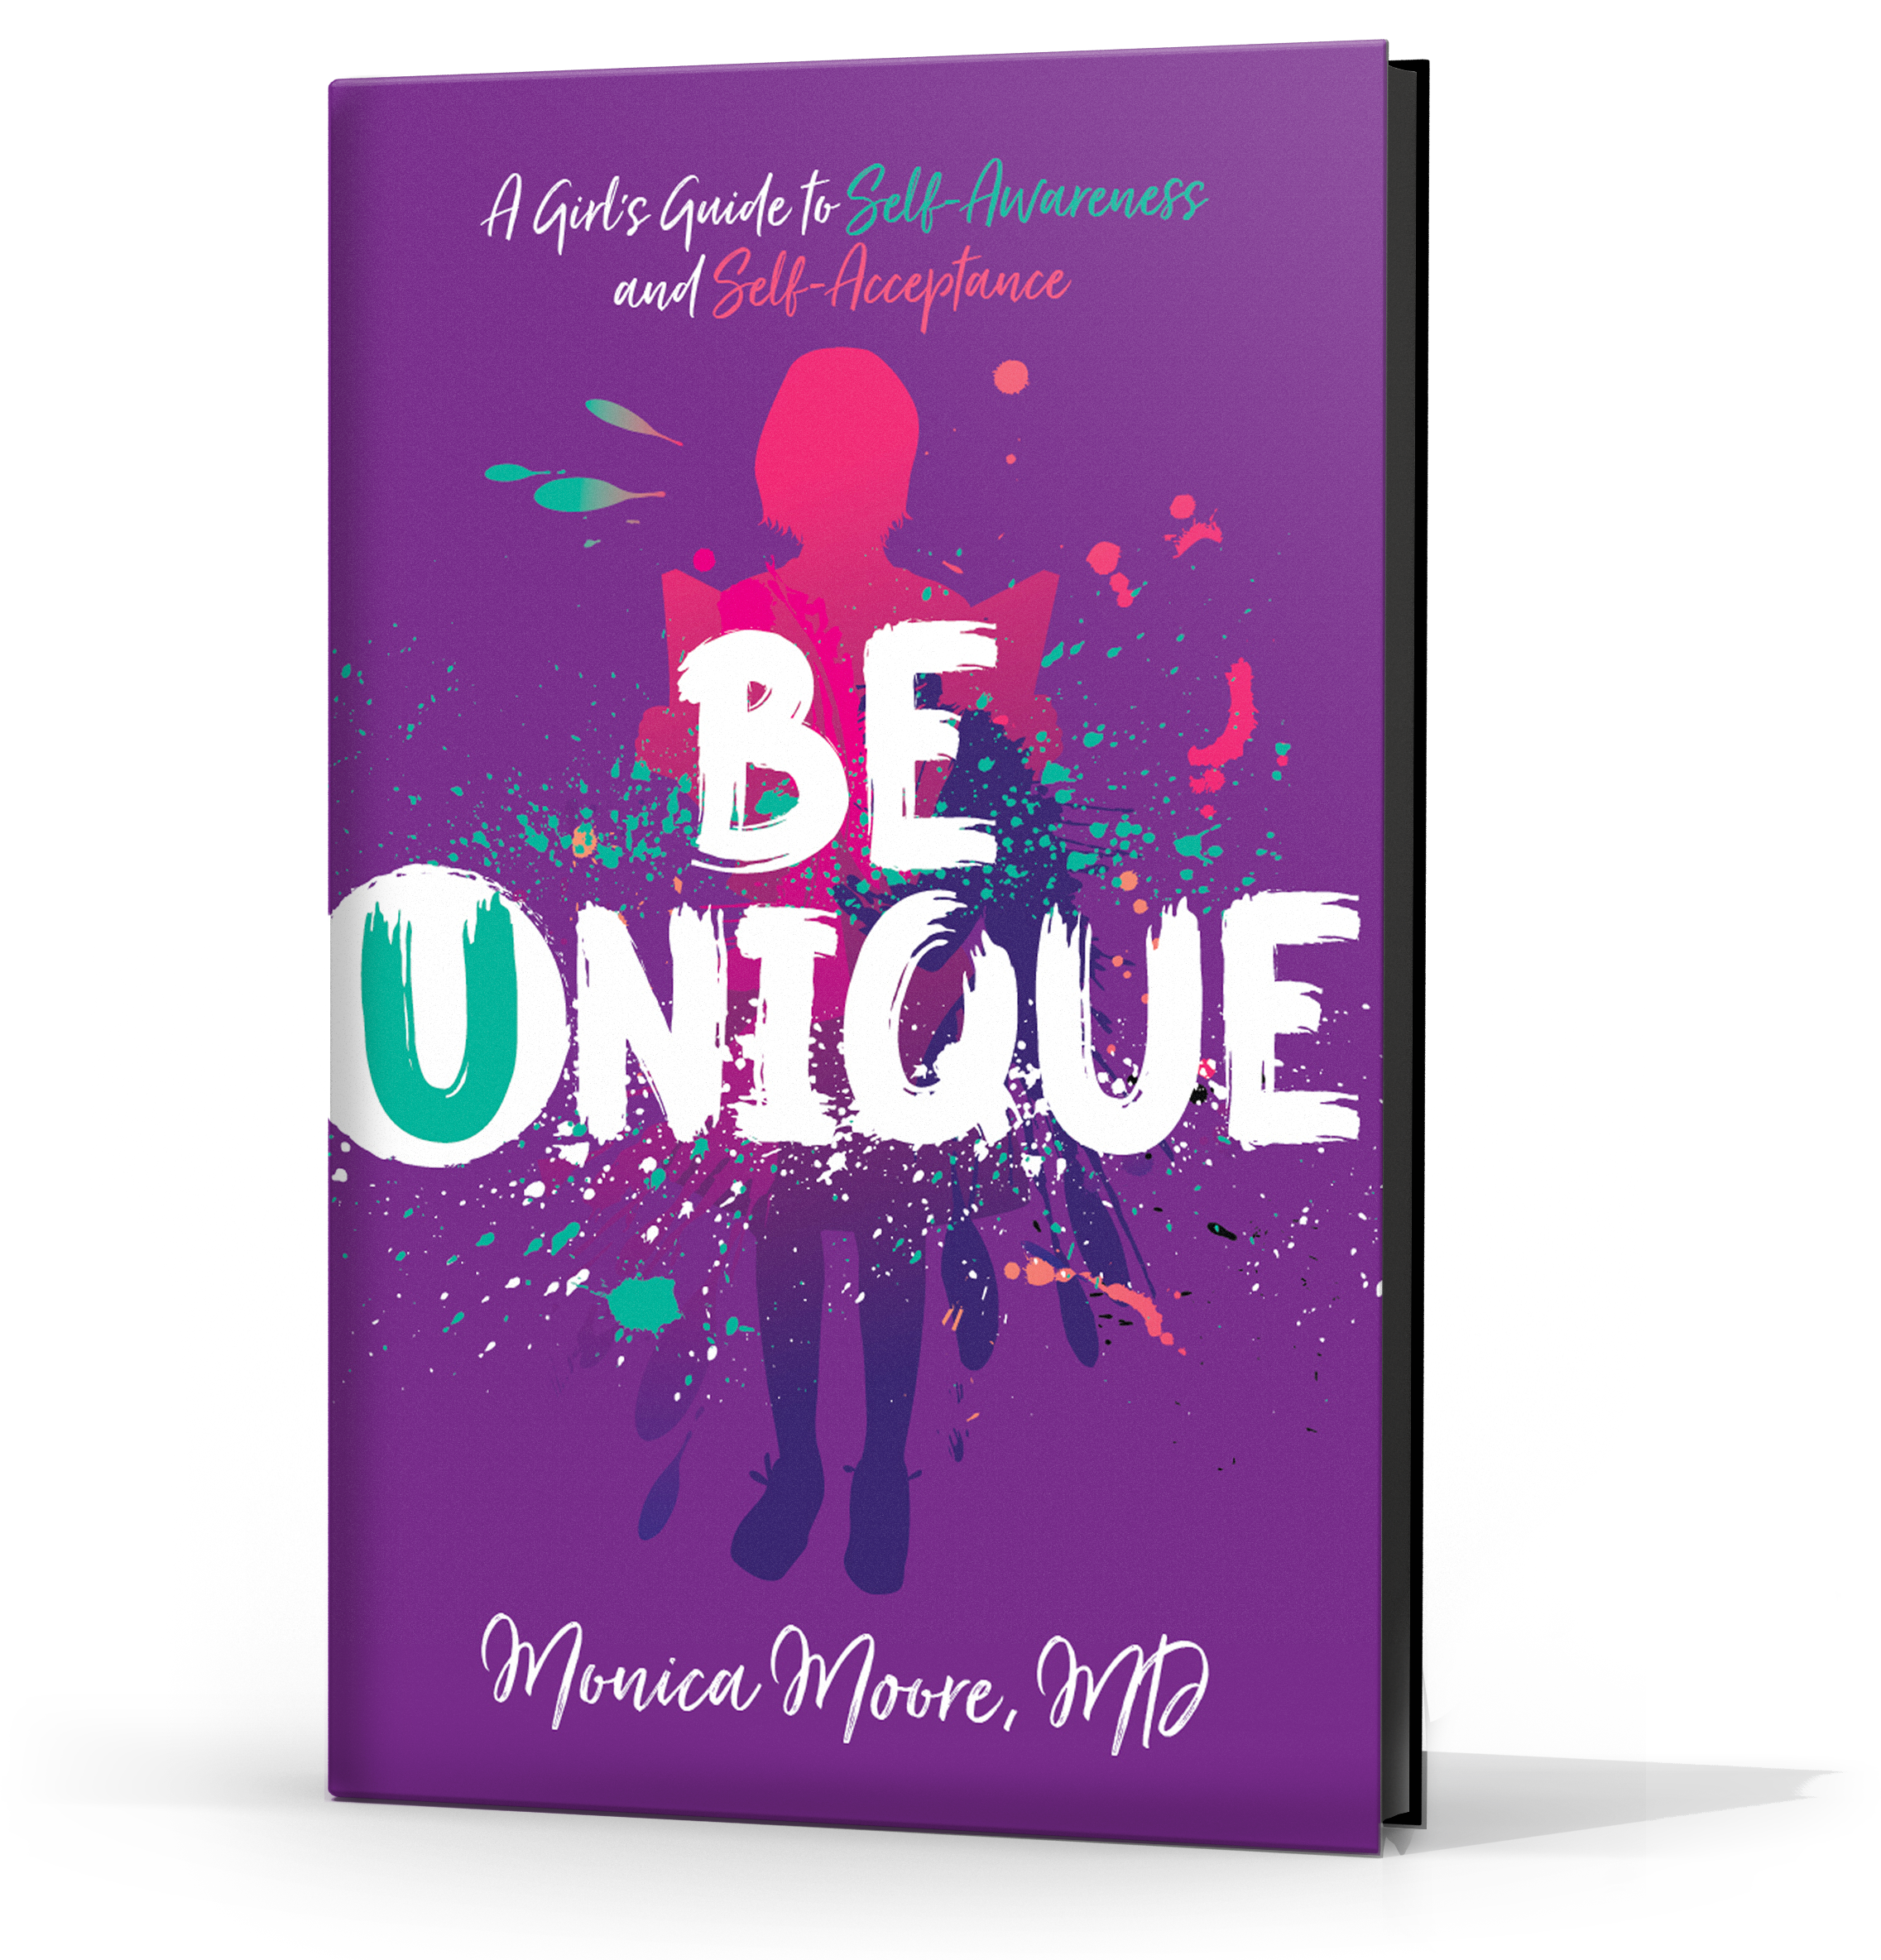 Pediatrician and Bestselling Author Releases Confidence Building Guide for Teen Girls